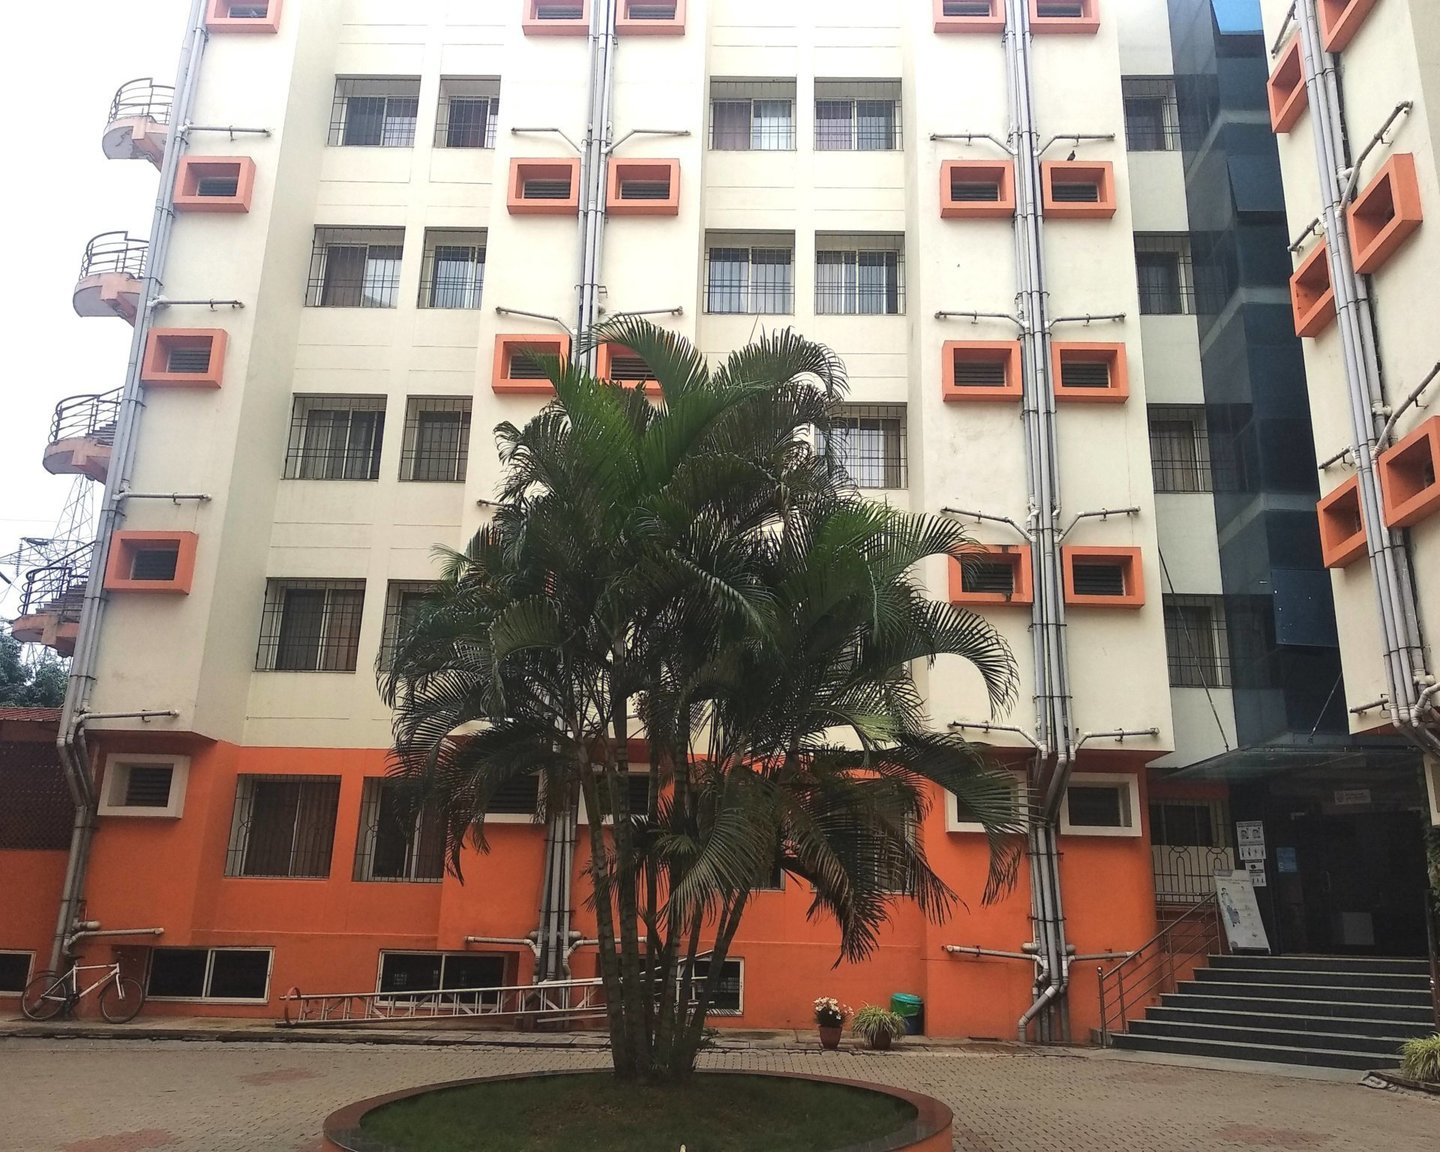 Hostel Front View